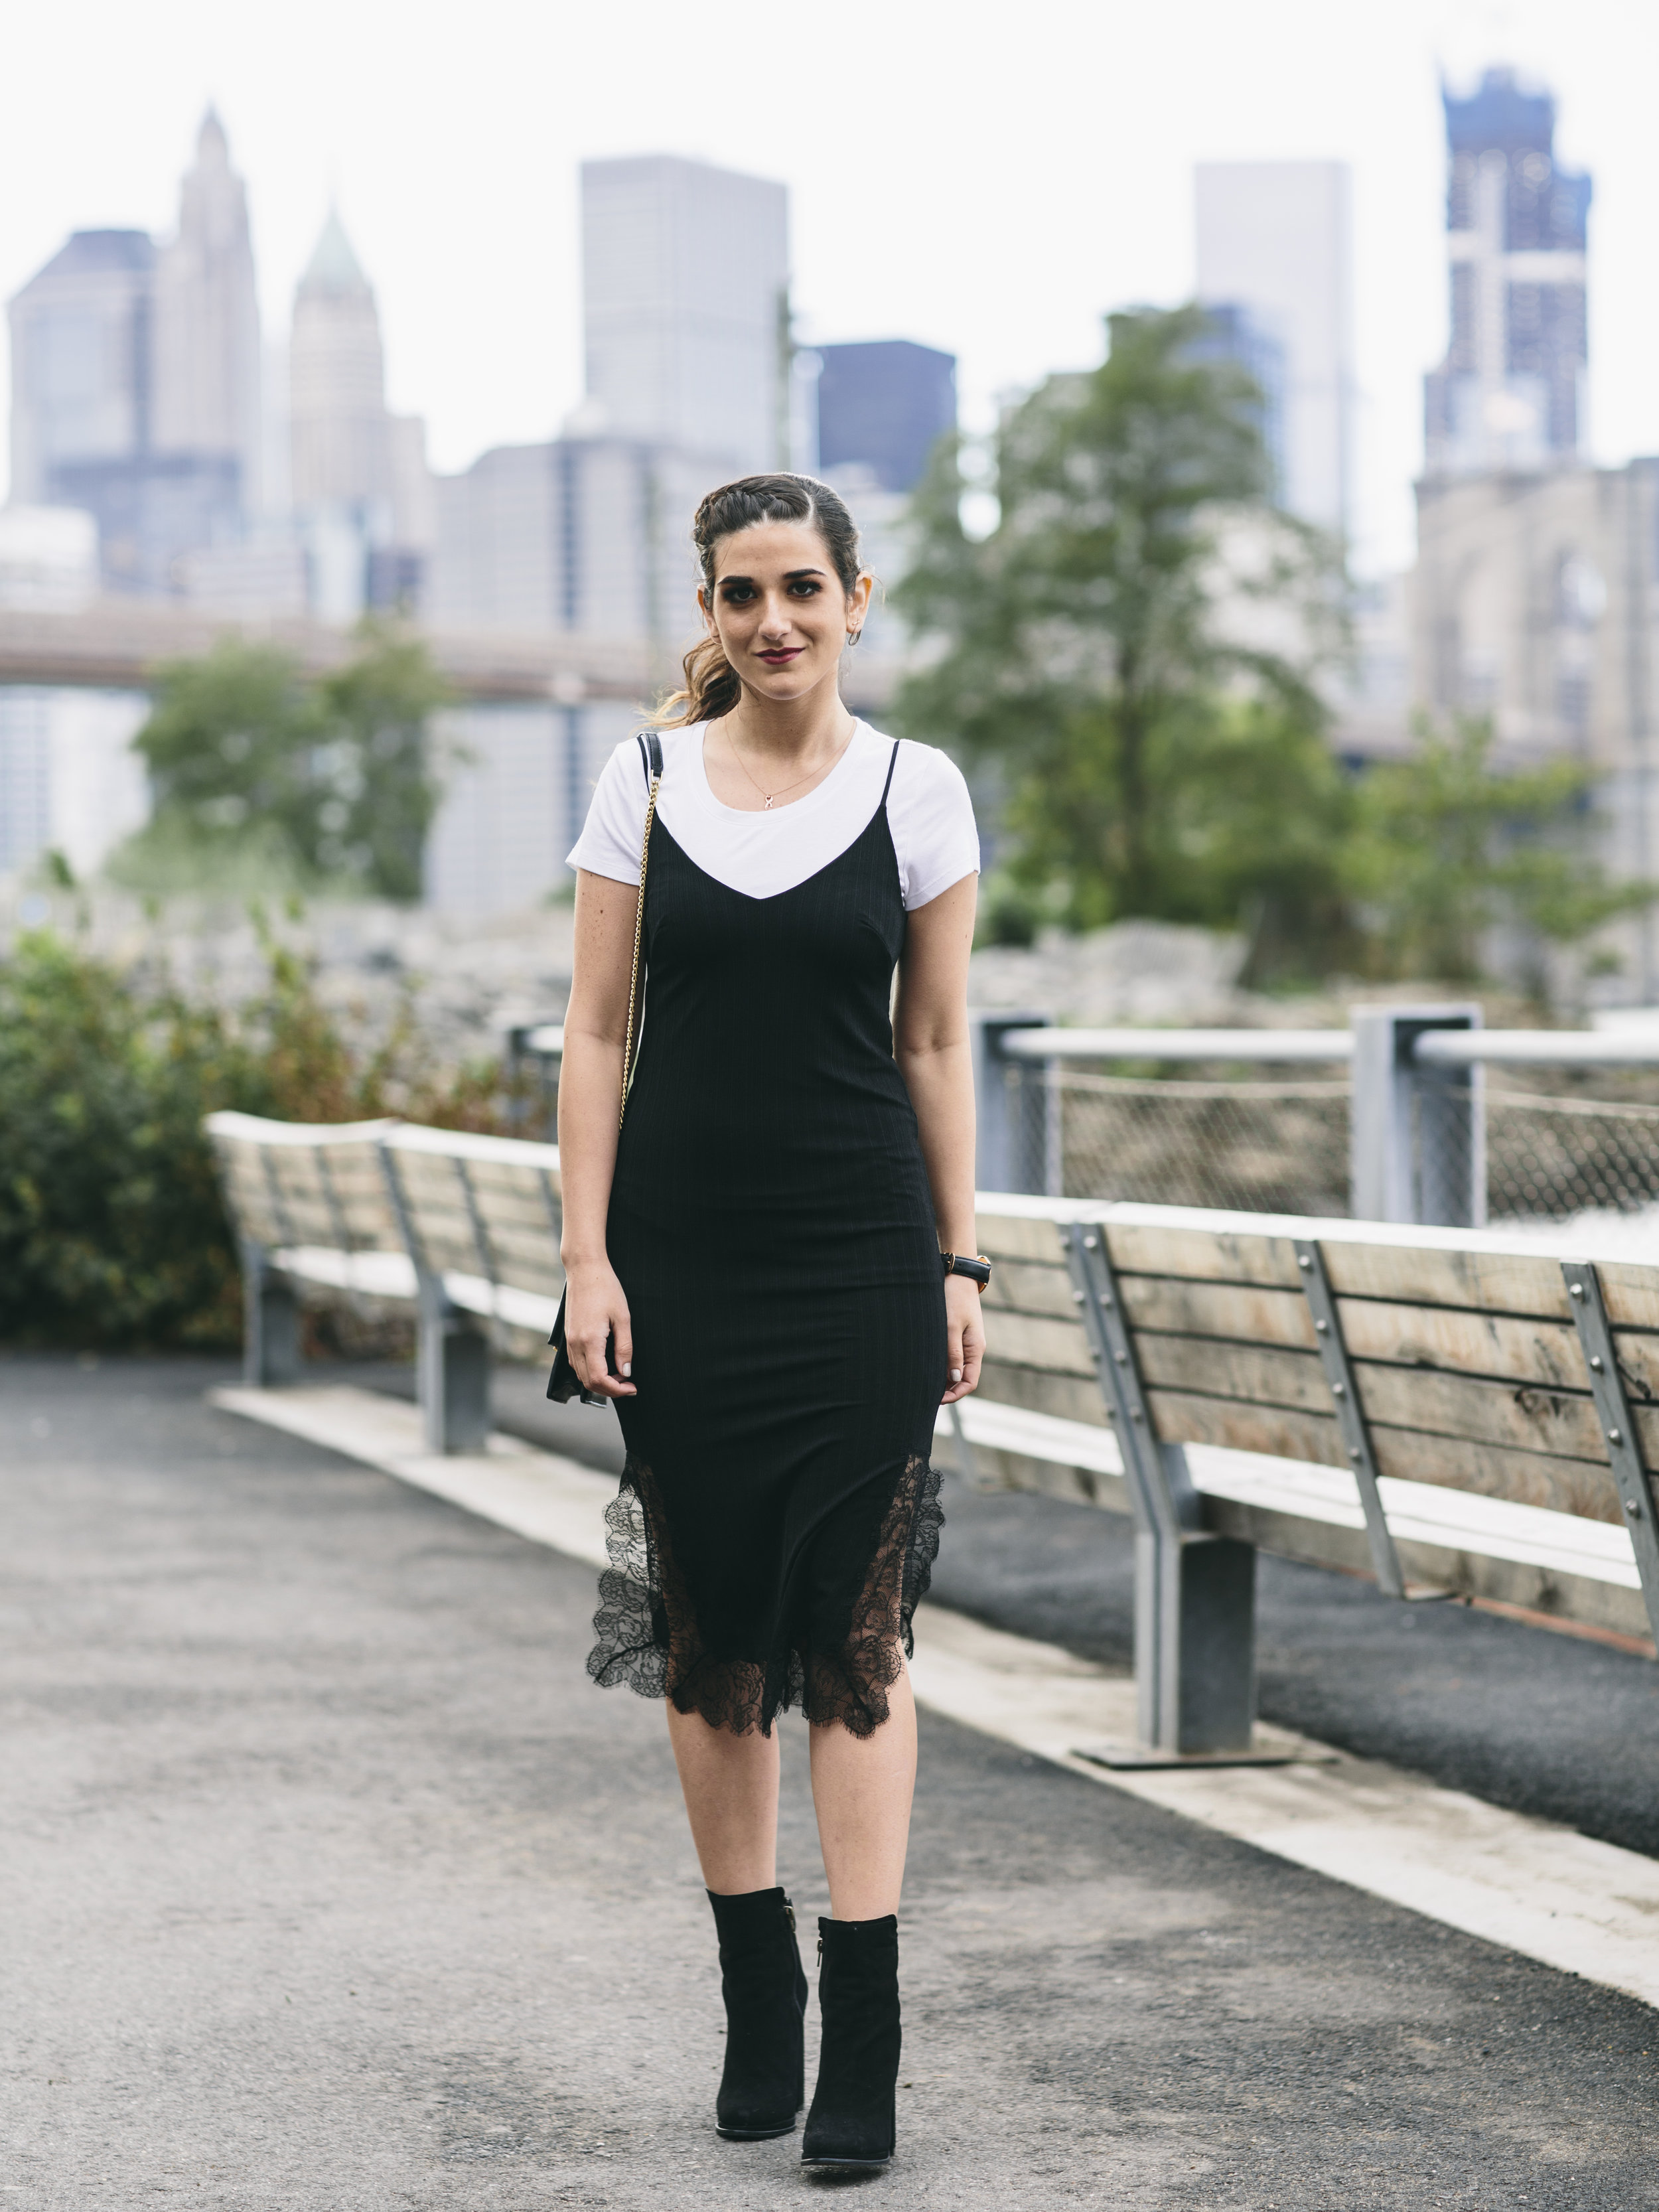 Black Lace Slip Dress Over White Tee Louboutins & Love Fashion Blog Esther Santer NYC Street Style Blogger Outfit OOTD Trendy Booties M4D3 Online Shopping Girl Women Fall Look Ivanka Trump Cocktail Bag Edgy Wear Inspo Hair Ponytail Fashionista.jpg